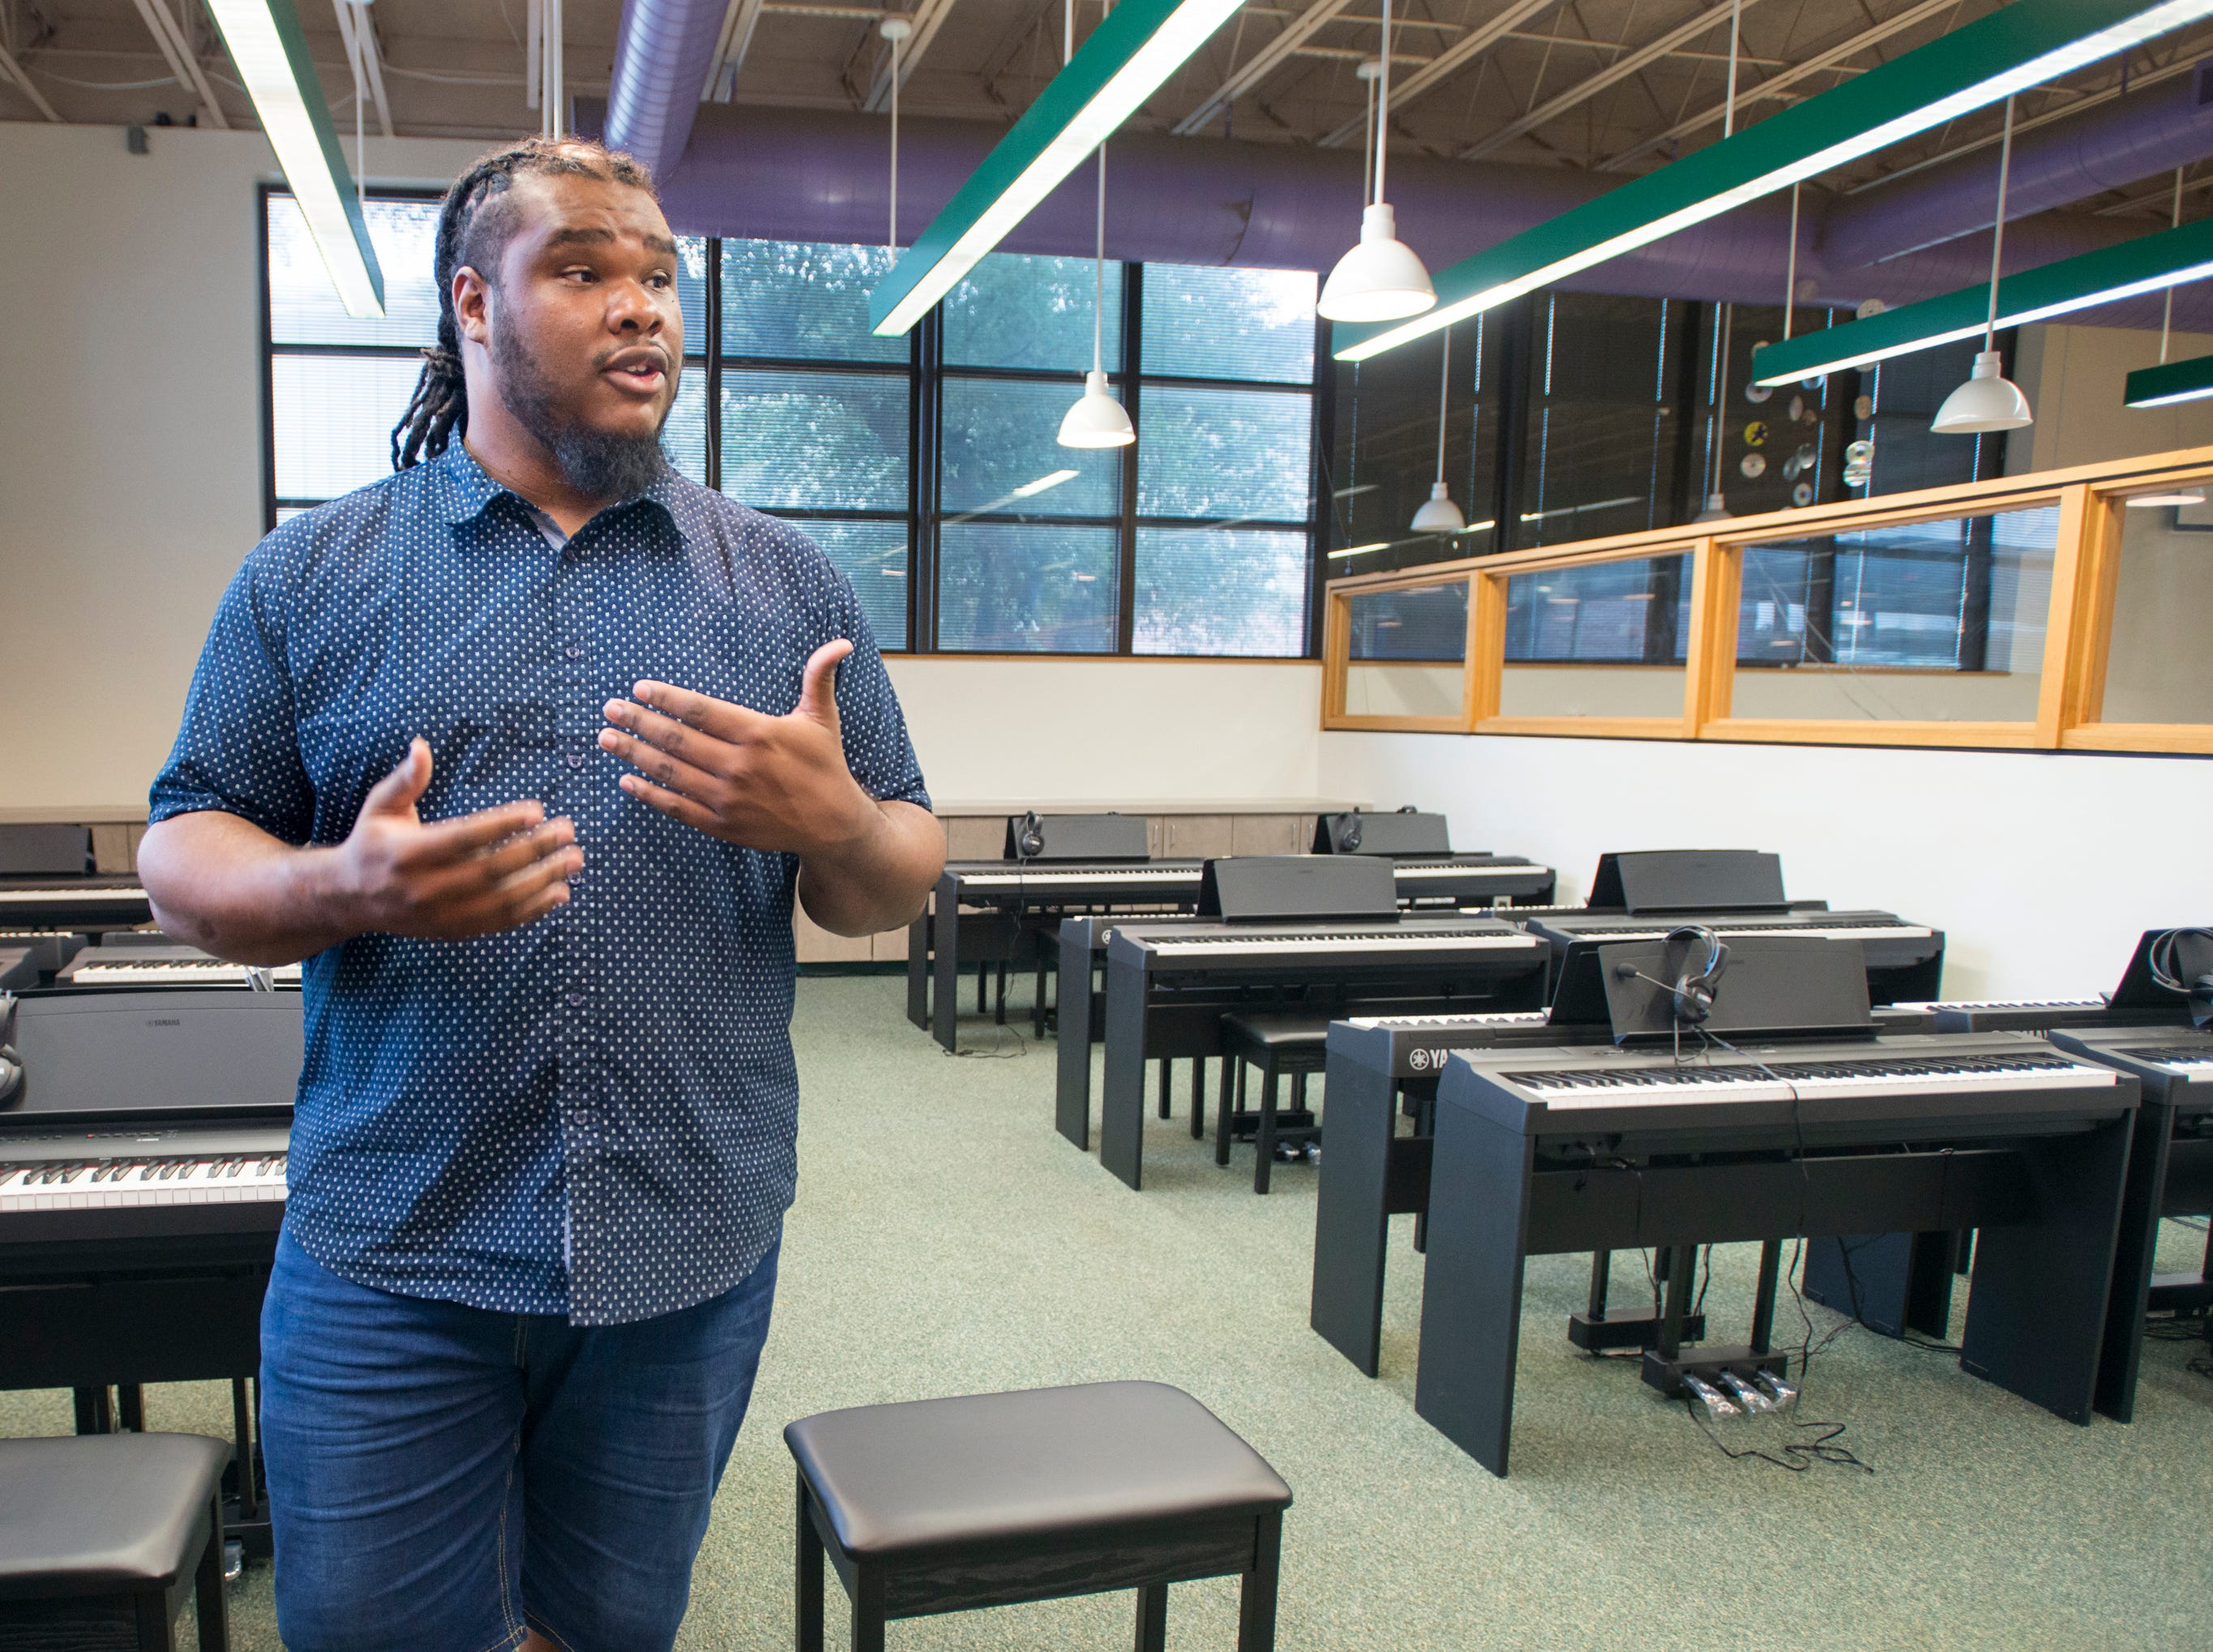 Music teacher Caleb Lovely sings the praises of the new piano studio at Warrington Middle School in Pensacola on Friday, August 2, 2018.